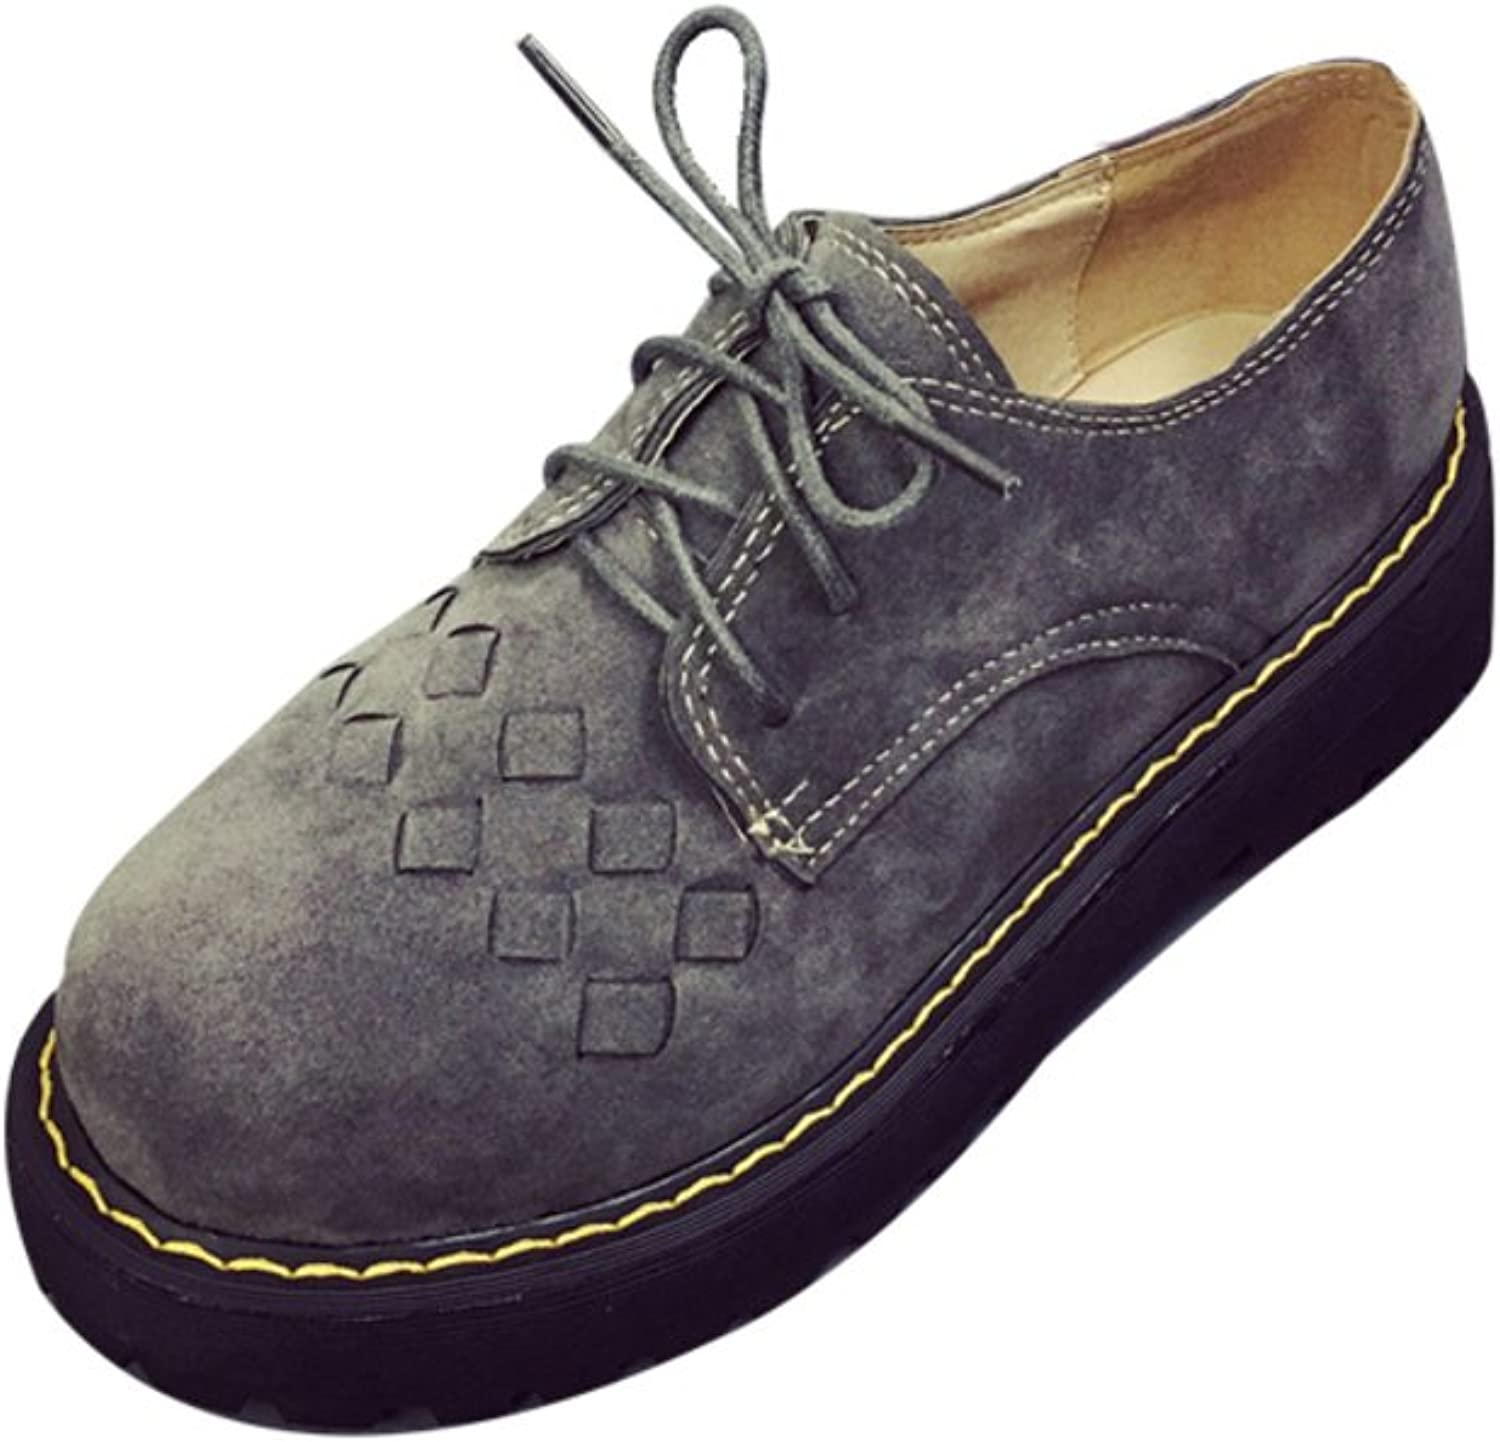 Huhuj Low retro shoes With thick-soled platform shoes Oxford shoes